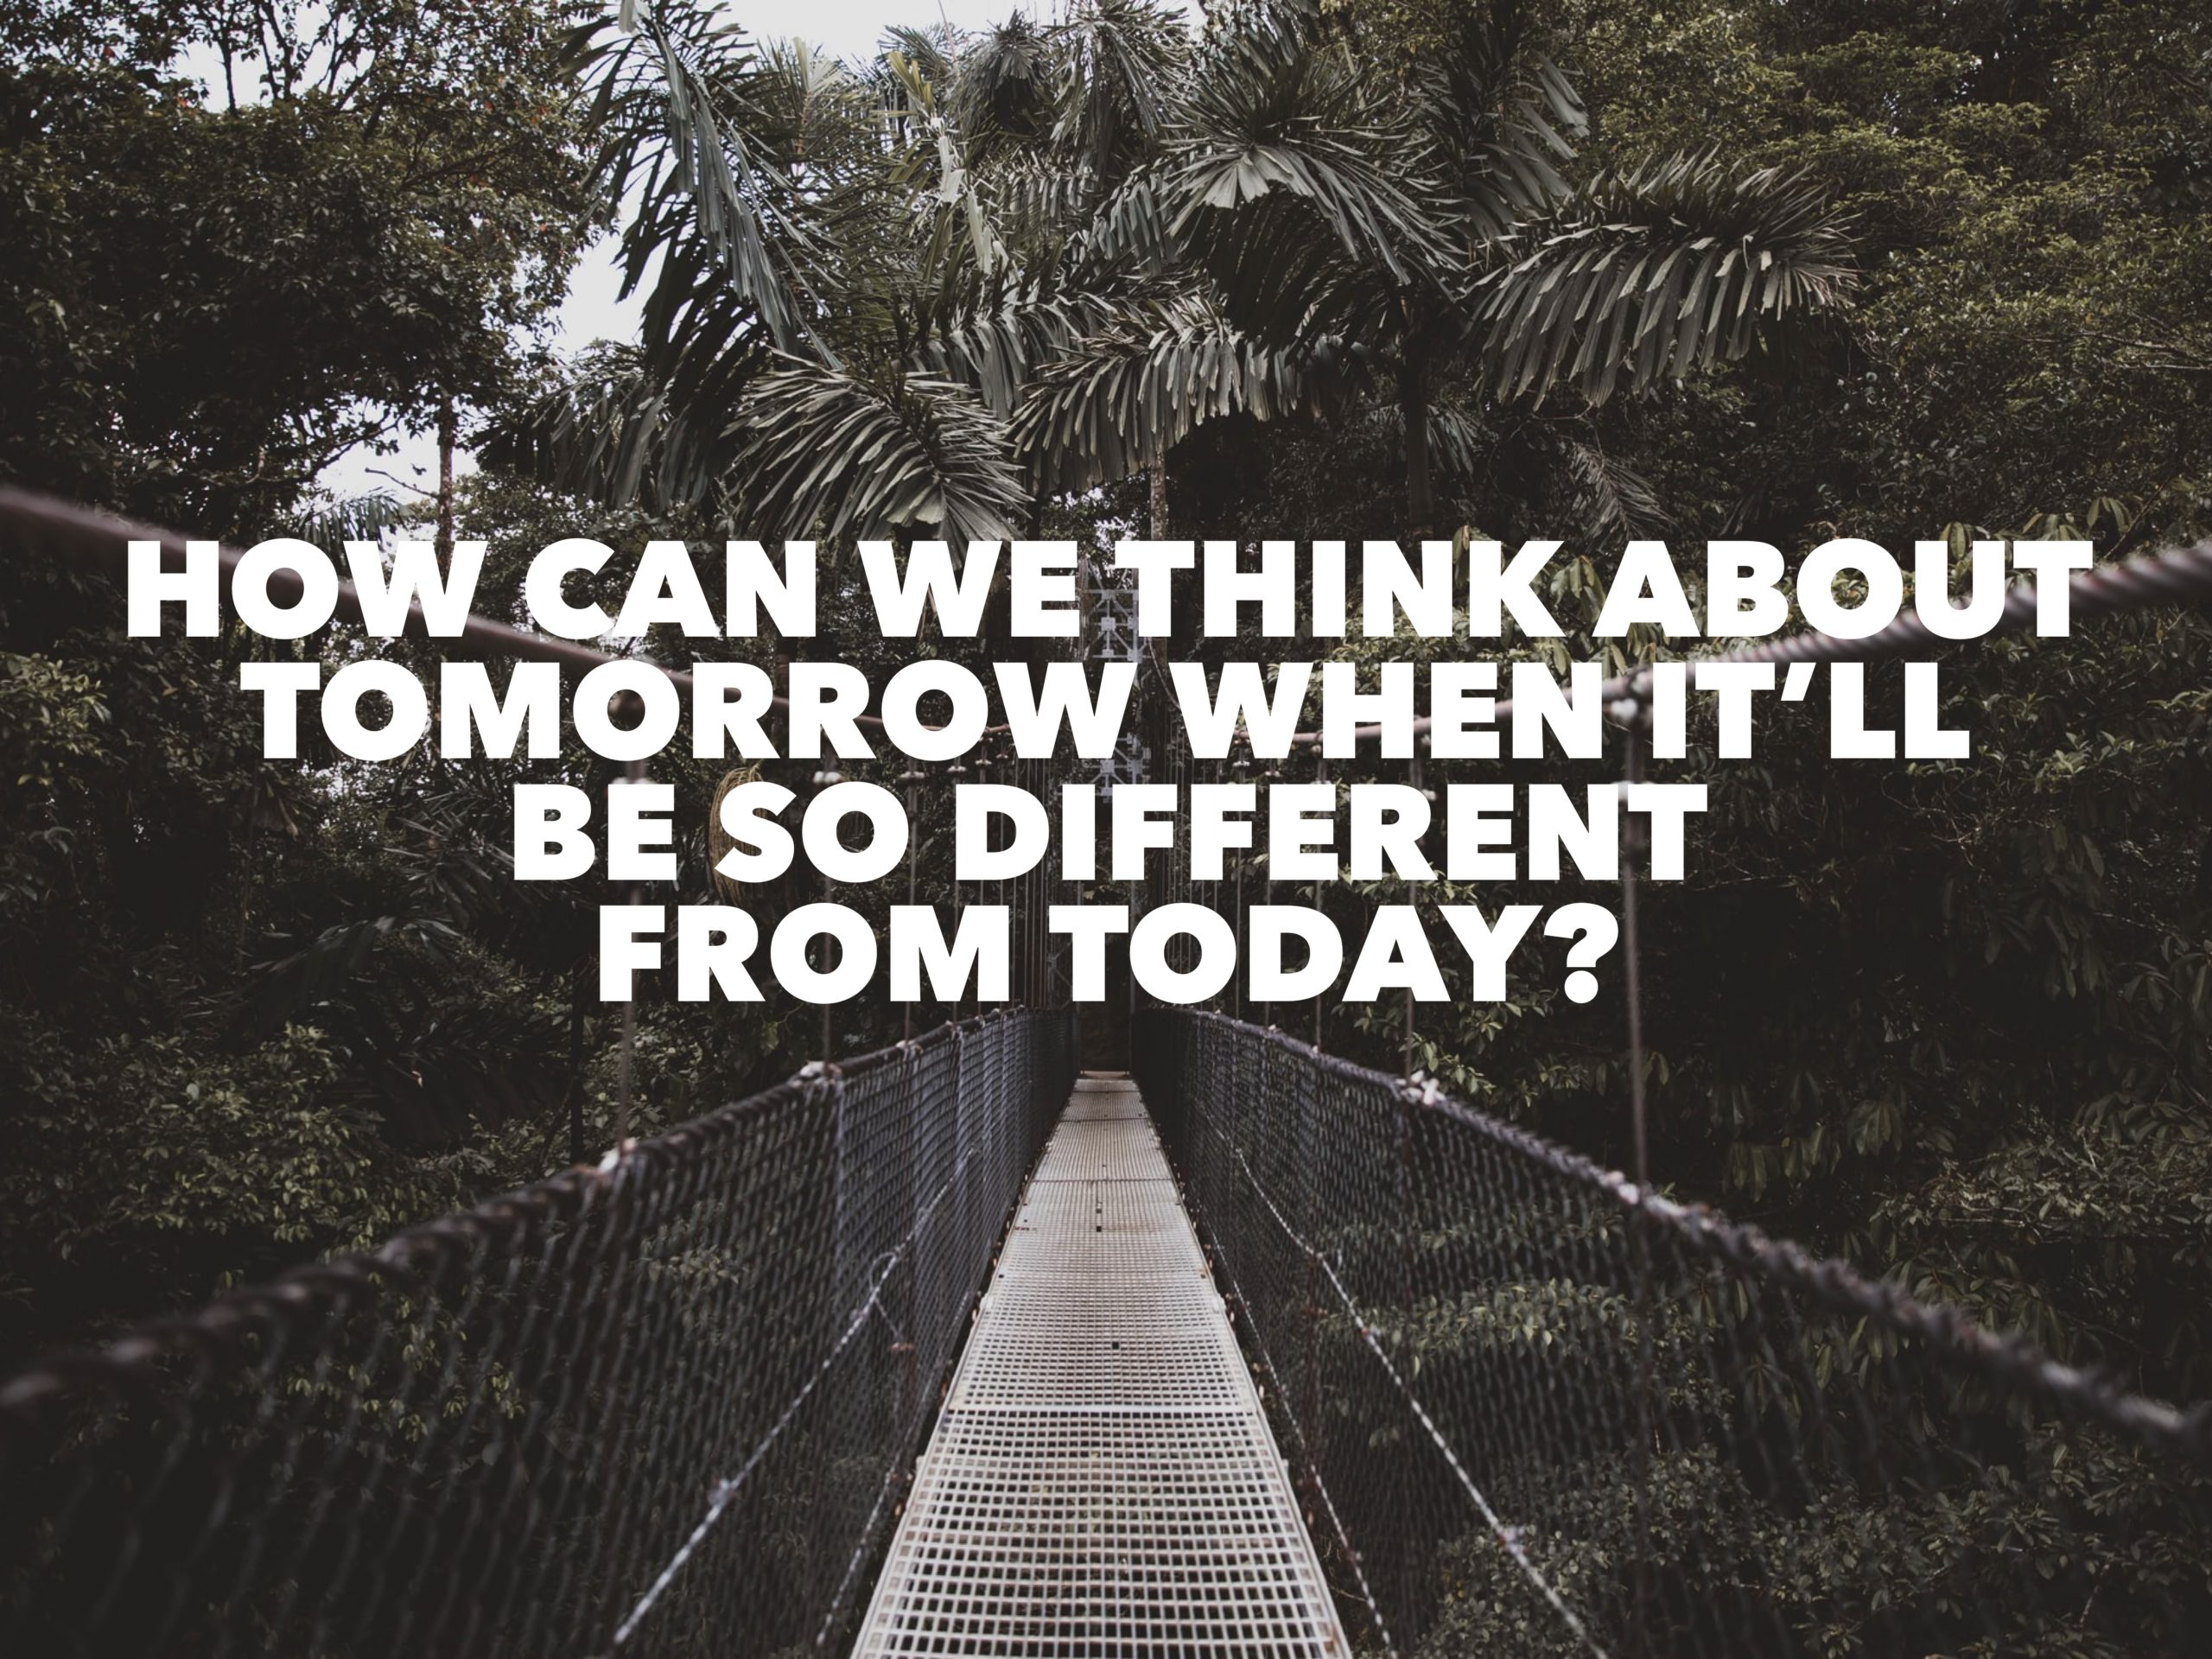 How Can We Think About Tomorrow When It's So Different From Today?